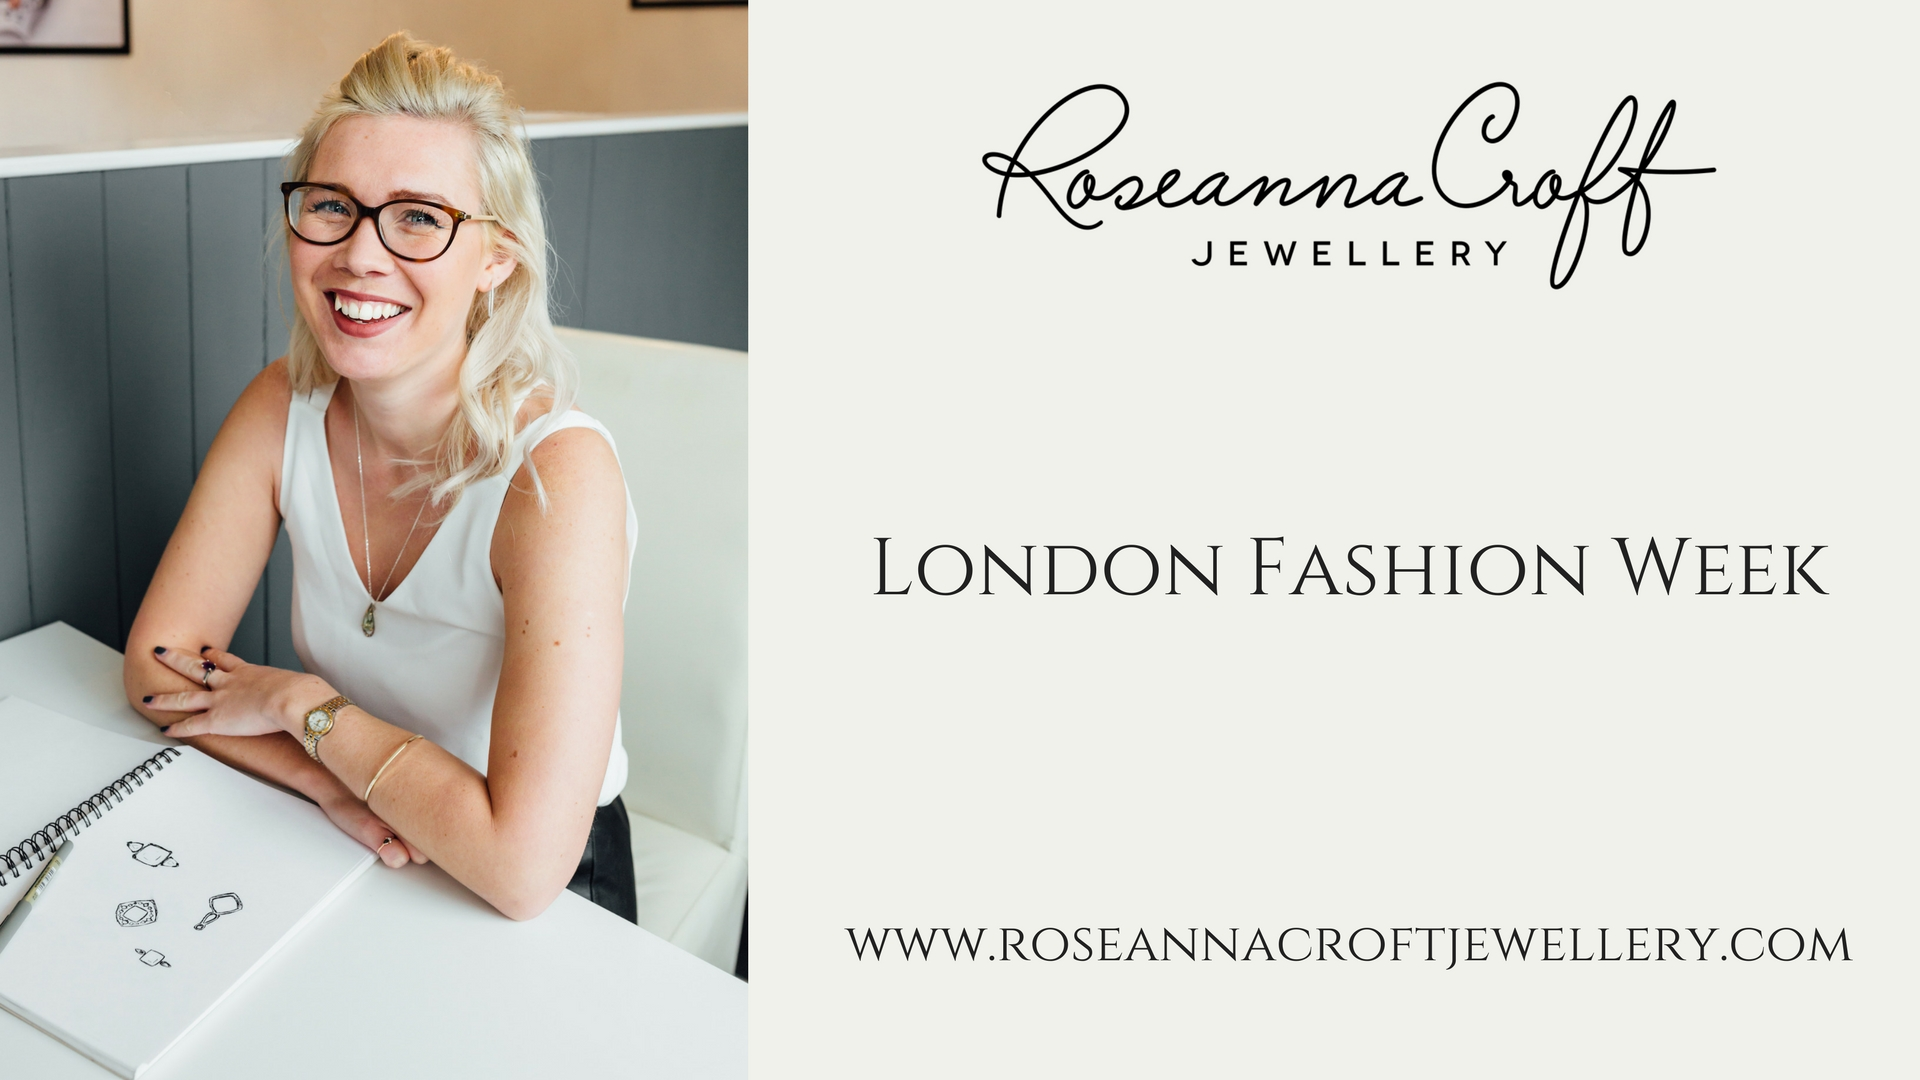 London Fashion Week Vlog by Roseanna Croft Jewellery